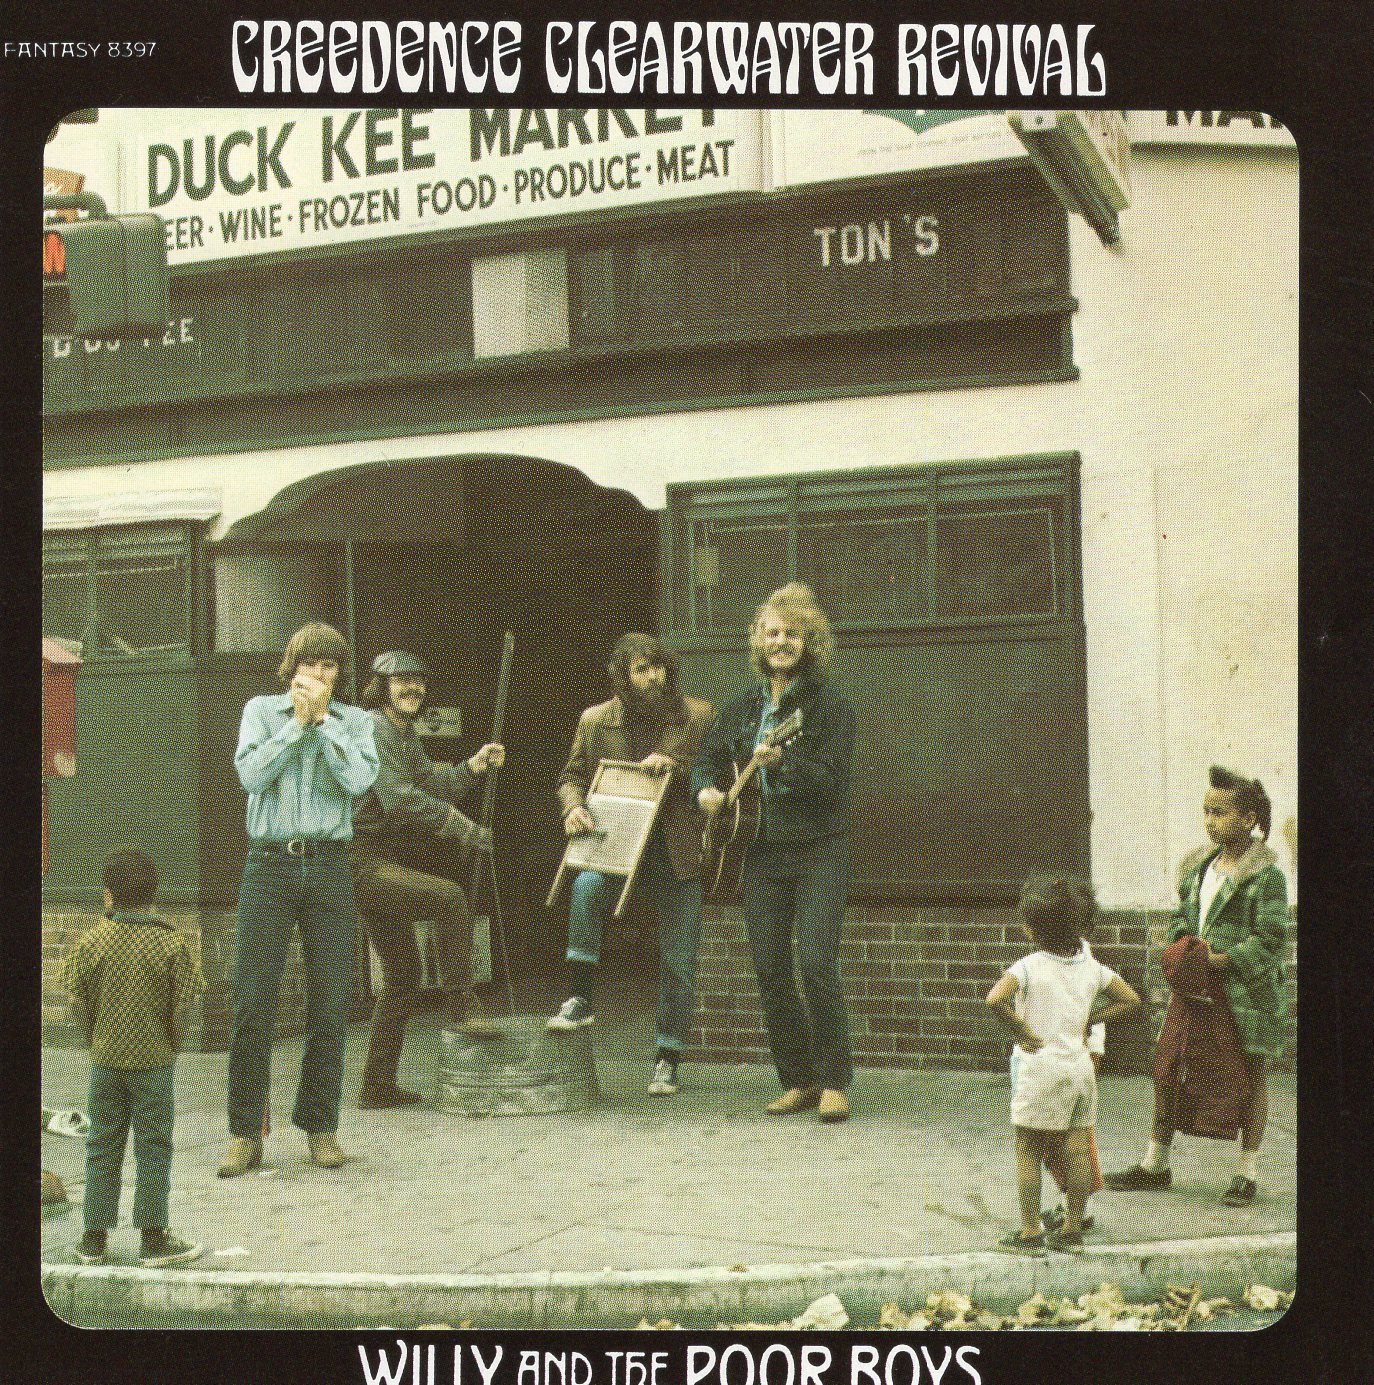 """Duck Kee Market"" Creedence Clearwater Revival"